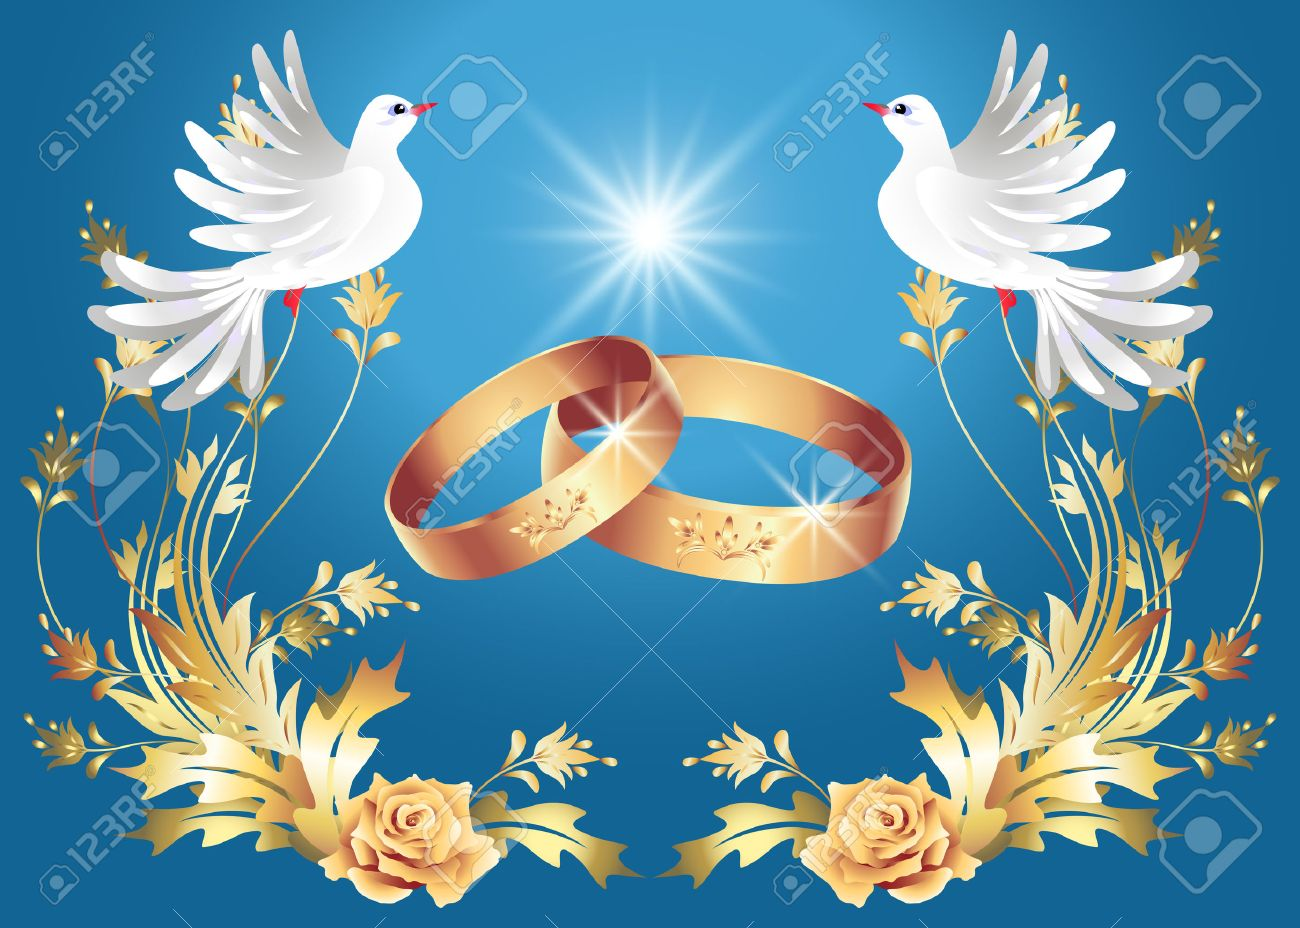 Card With Wedding Rings And Two Doves Stock Vector